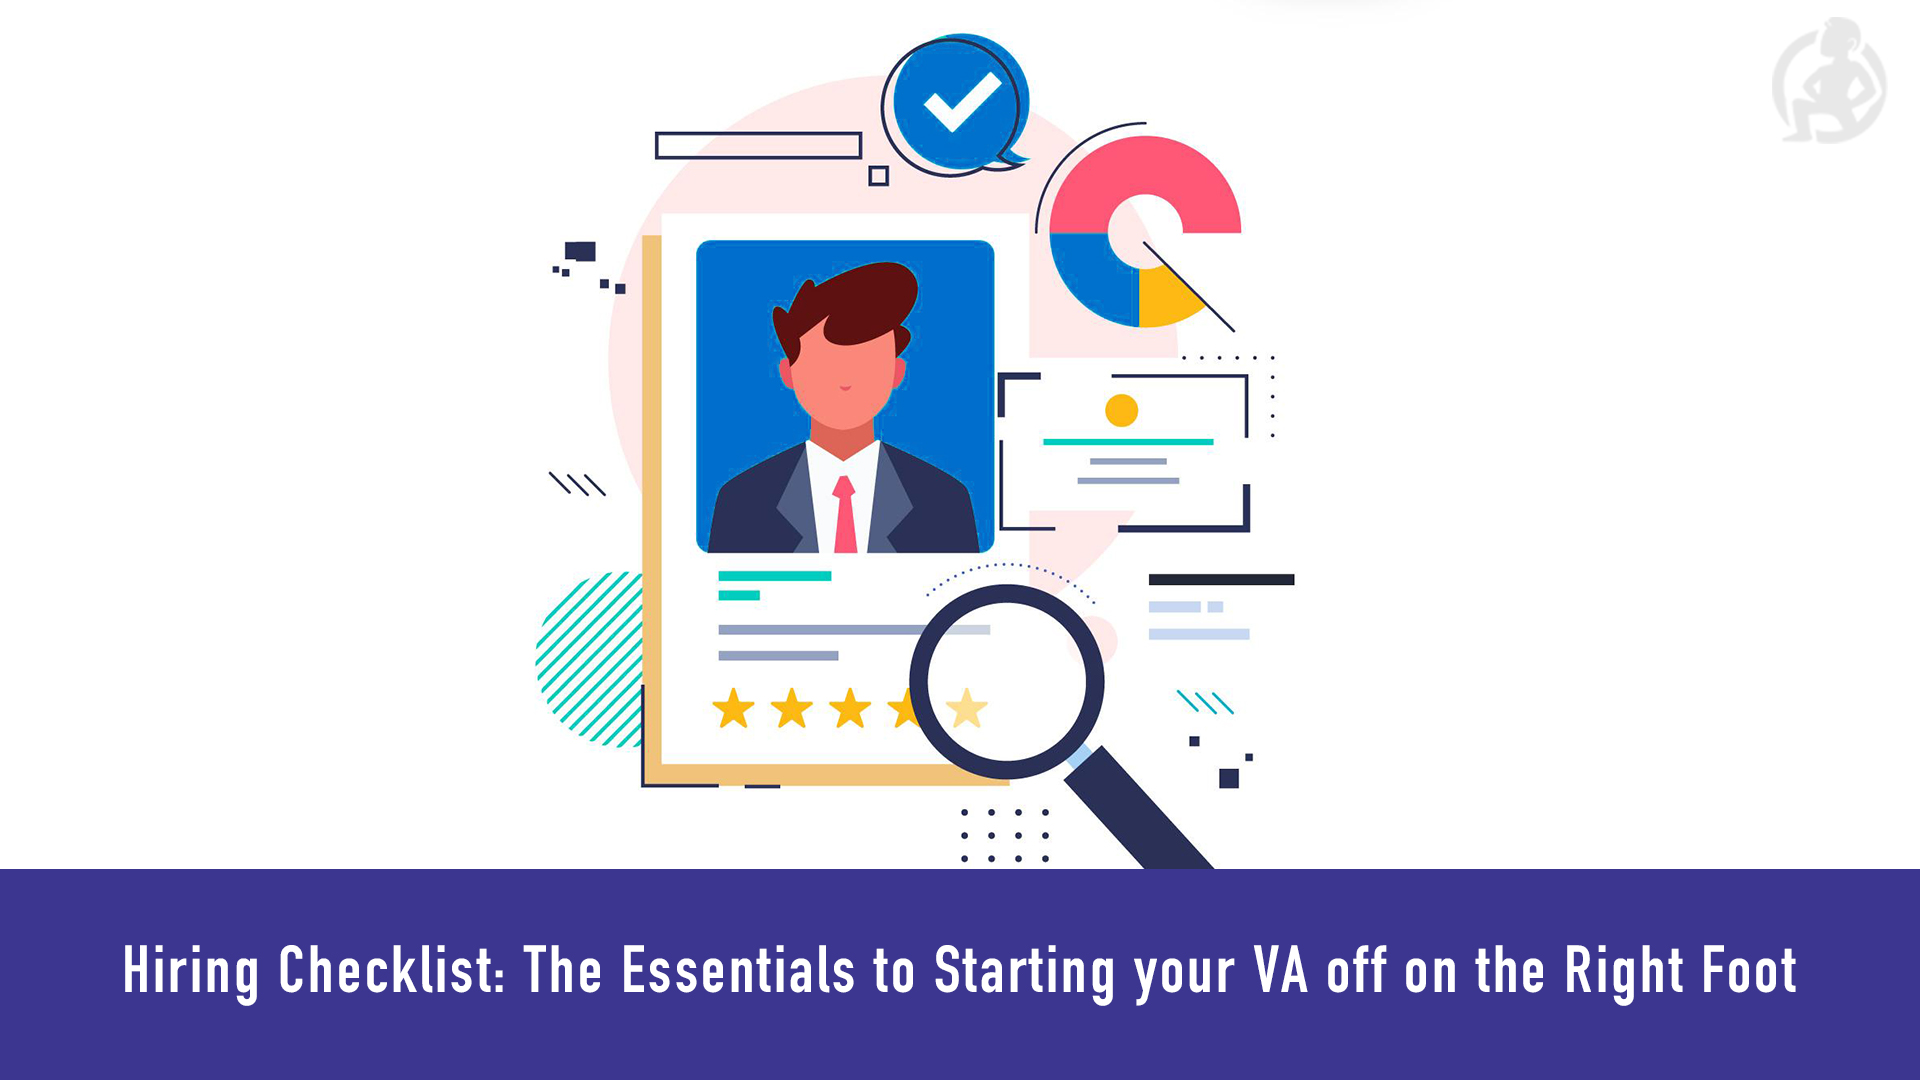 Hiring Checklist The Essentials to Starting your VA off on the Right Foot Feature